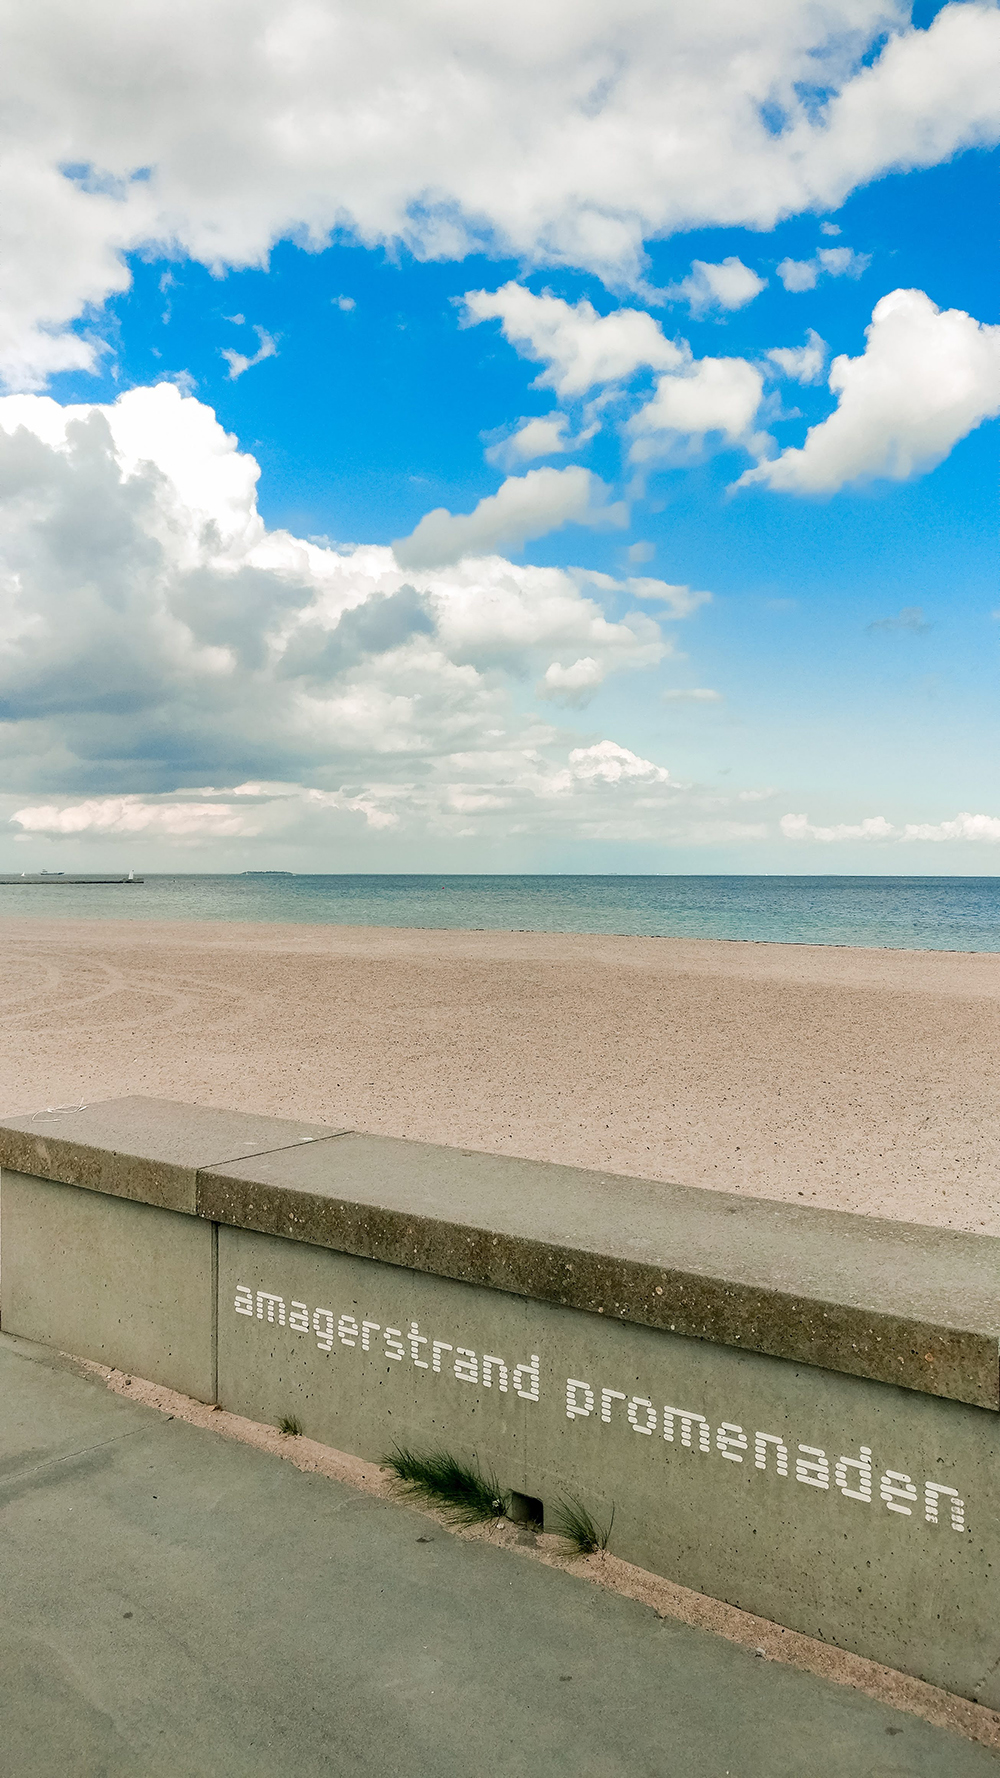 Amager Strandpark - Copenhagen 3-day travel itinerary | Aliz's Wonderland